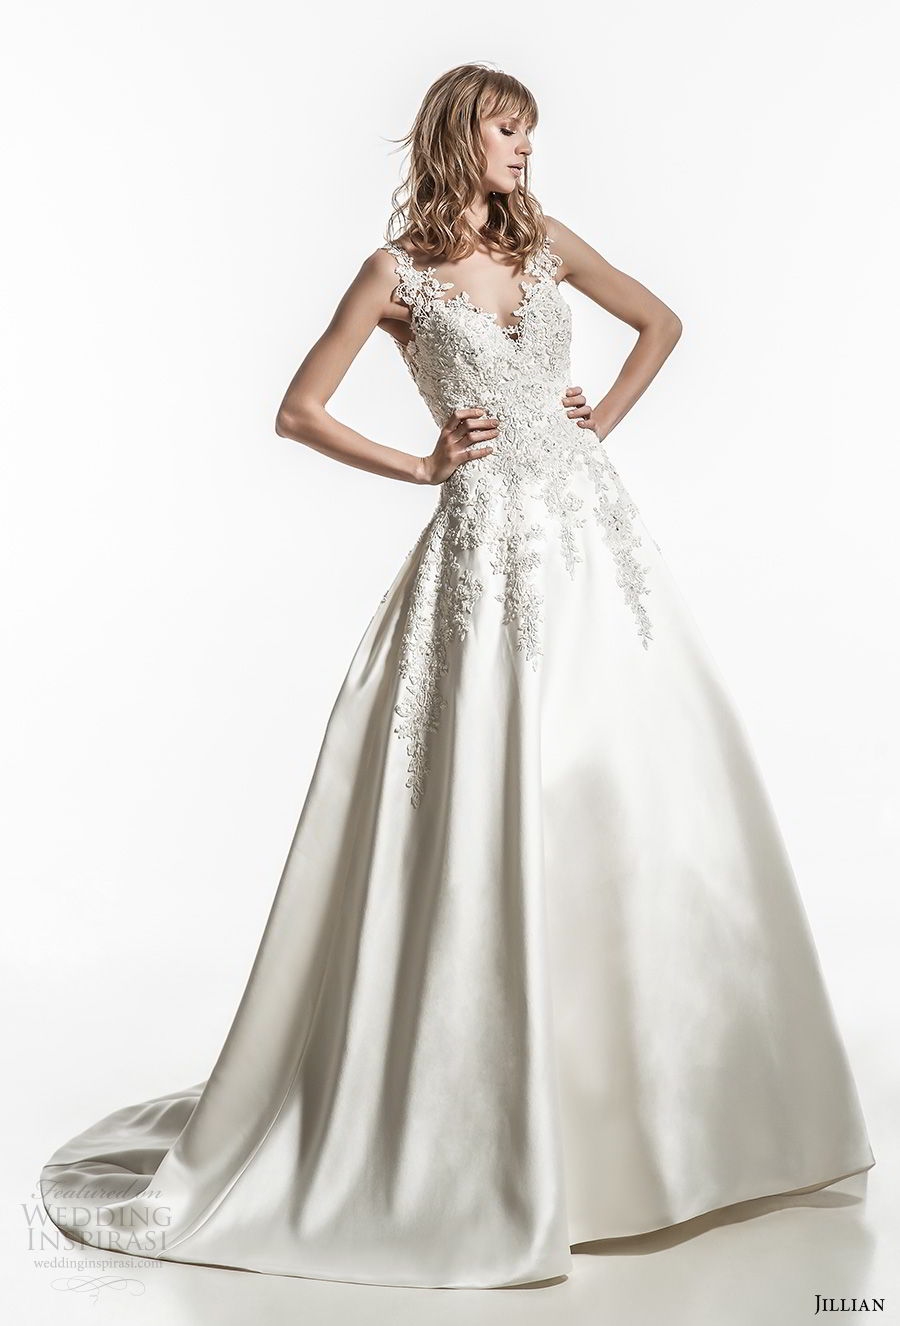 jillian 2018 bridal sleeveless thick strap sweetheart neckline heavily embellished bodice sating skirt romantic a  line wedding dress sheer button back chapel train (29) mv